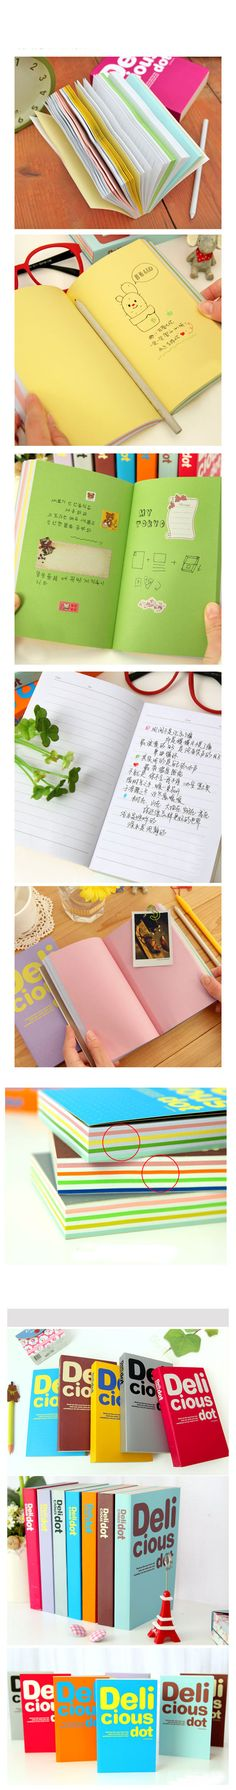 $3.89 1 PC Thickening White-collar Notebook Colorful Pages (Random Color) - BornPrettyStore.com